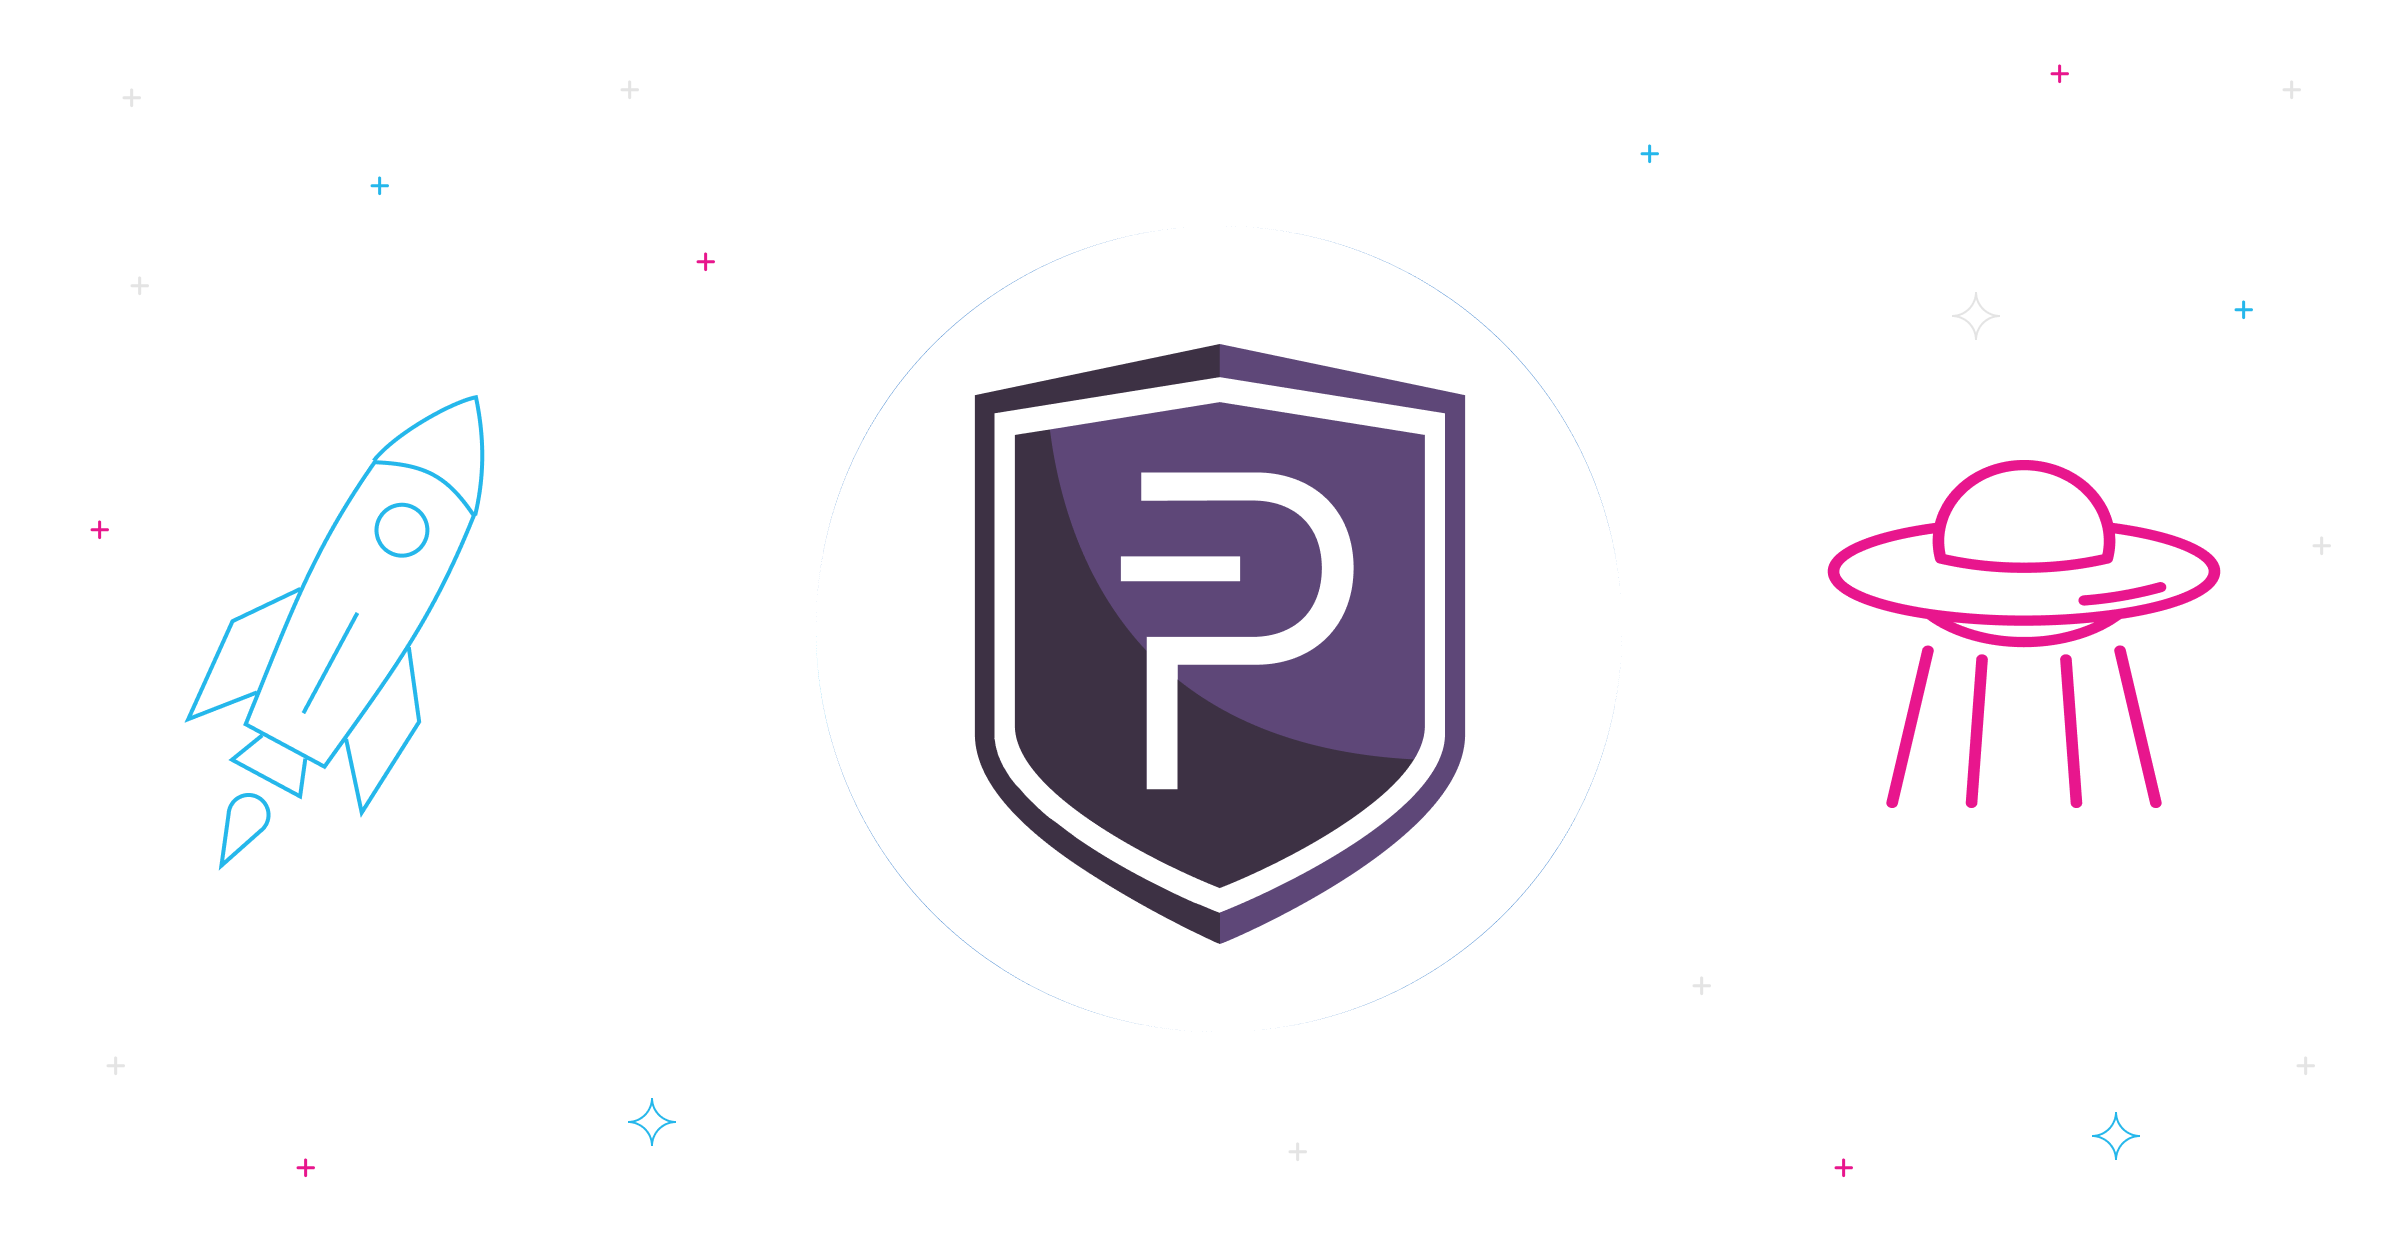 Exchange PIVX coin at the best price with the Swapzone Crypto Exchange Aggregator